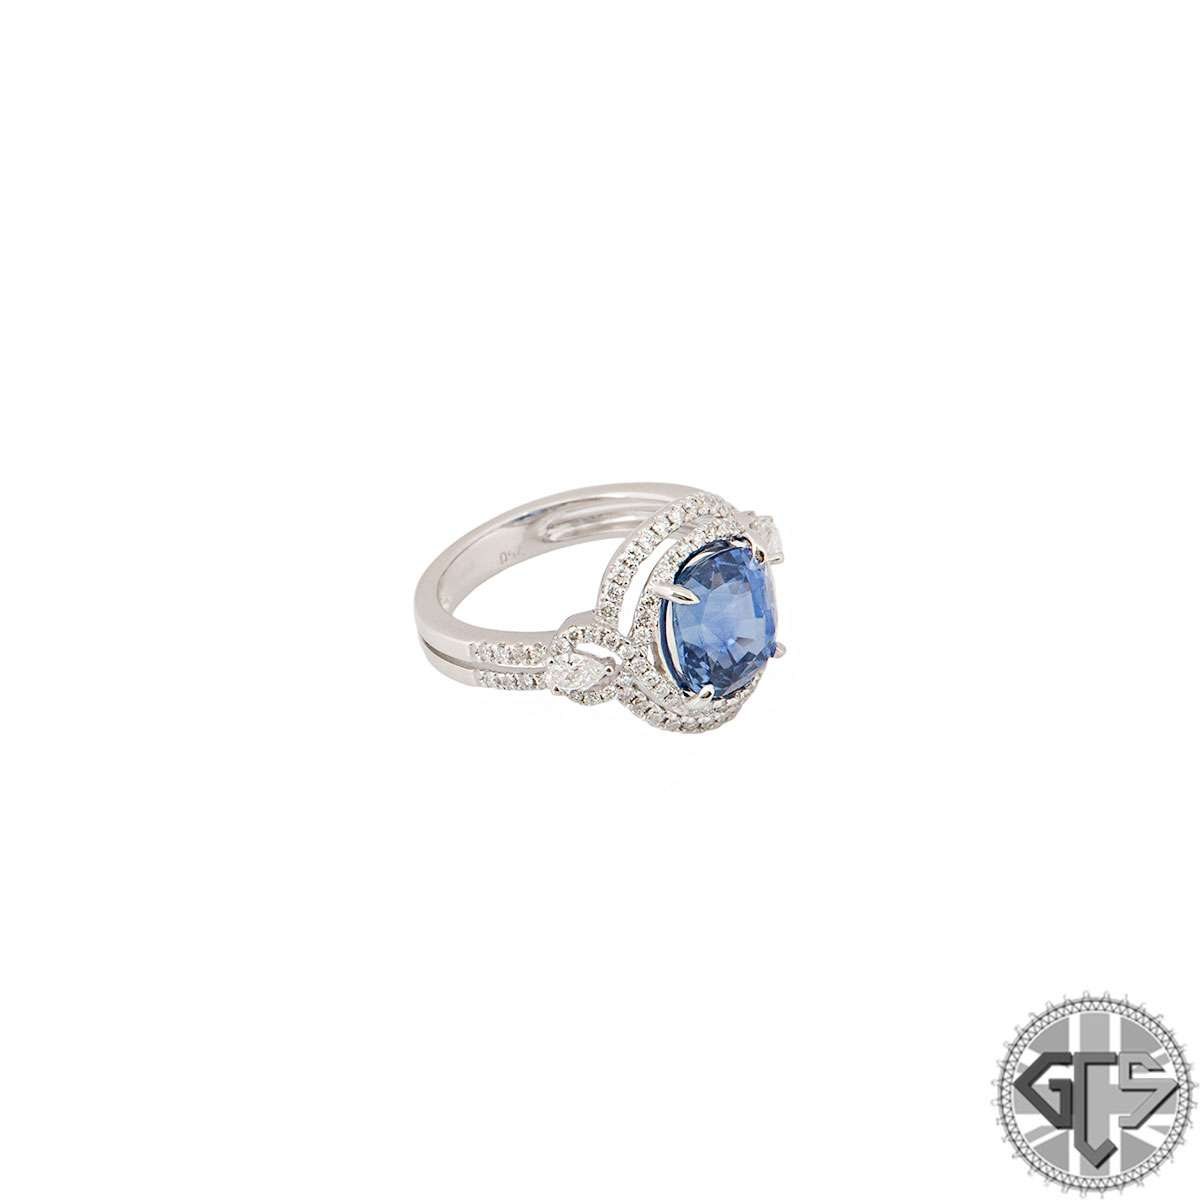 White Gold Diamond And Sapphire Cushion Cut Ring 3.74ct